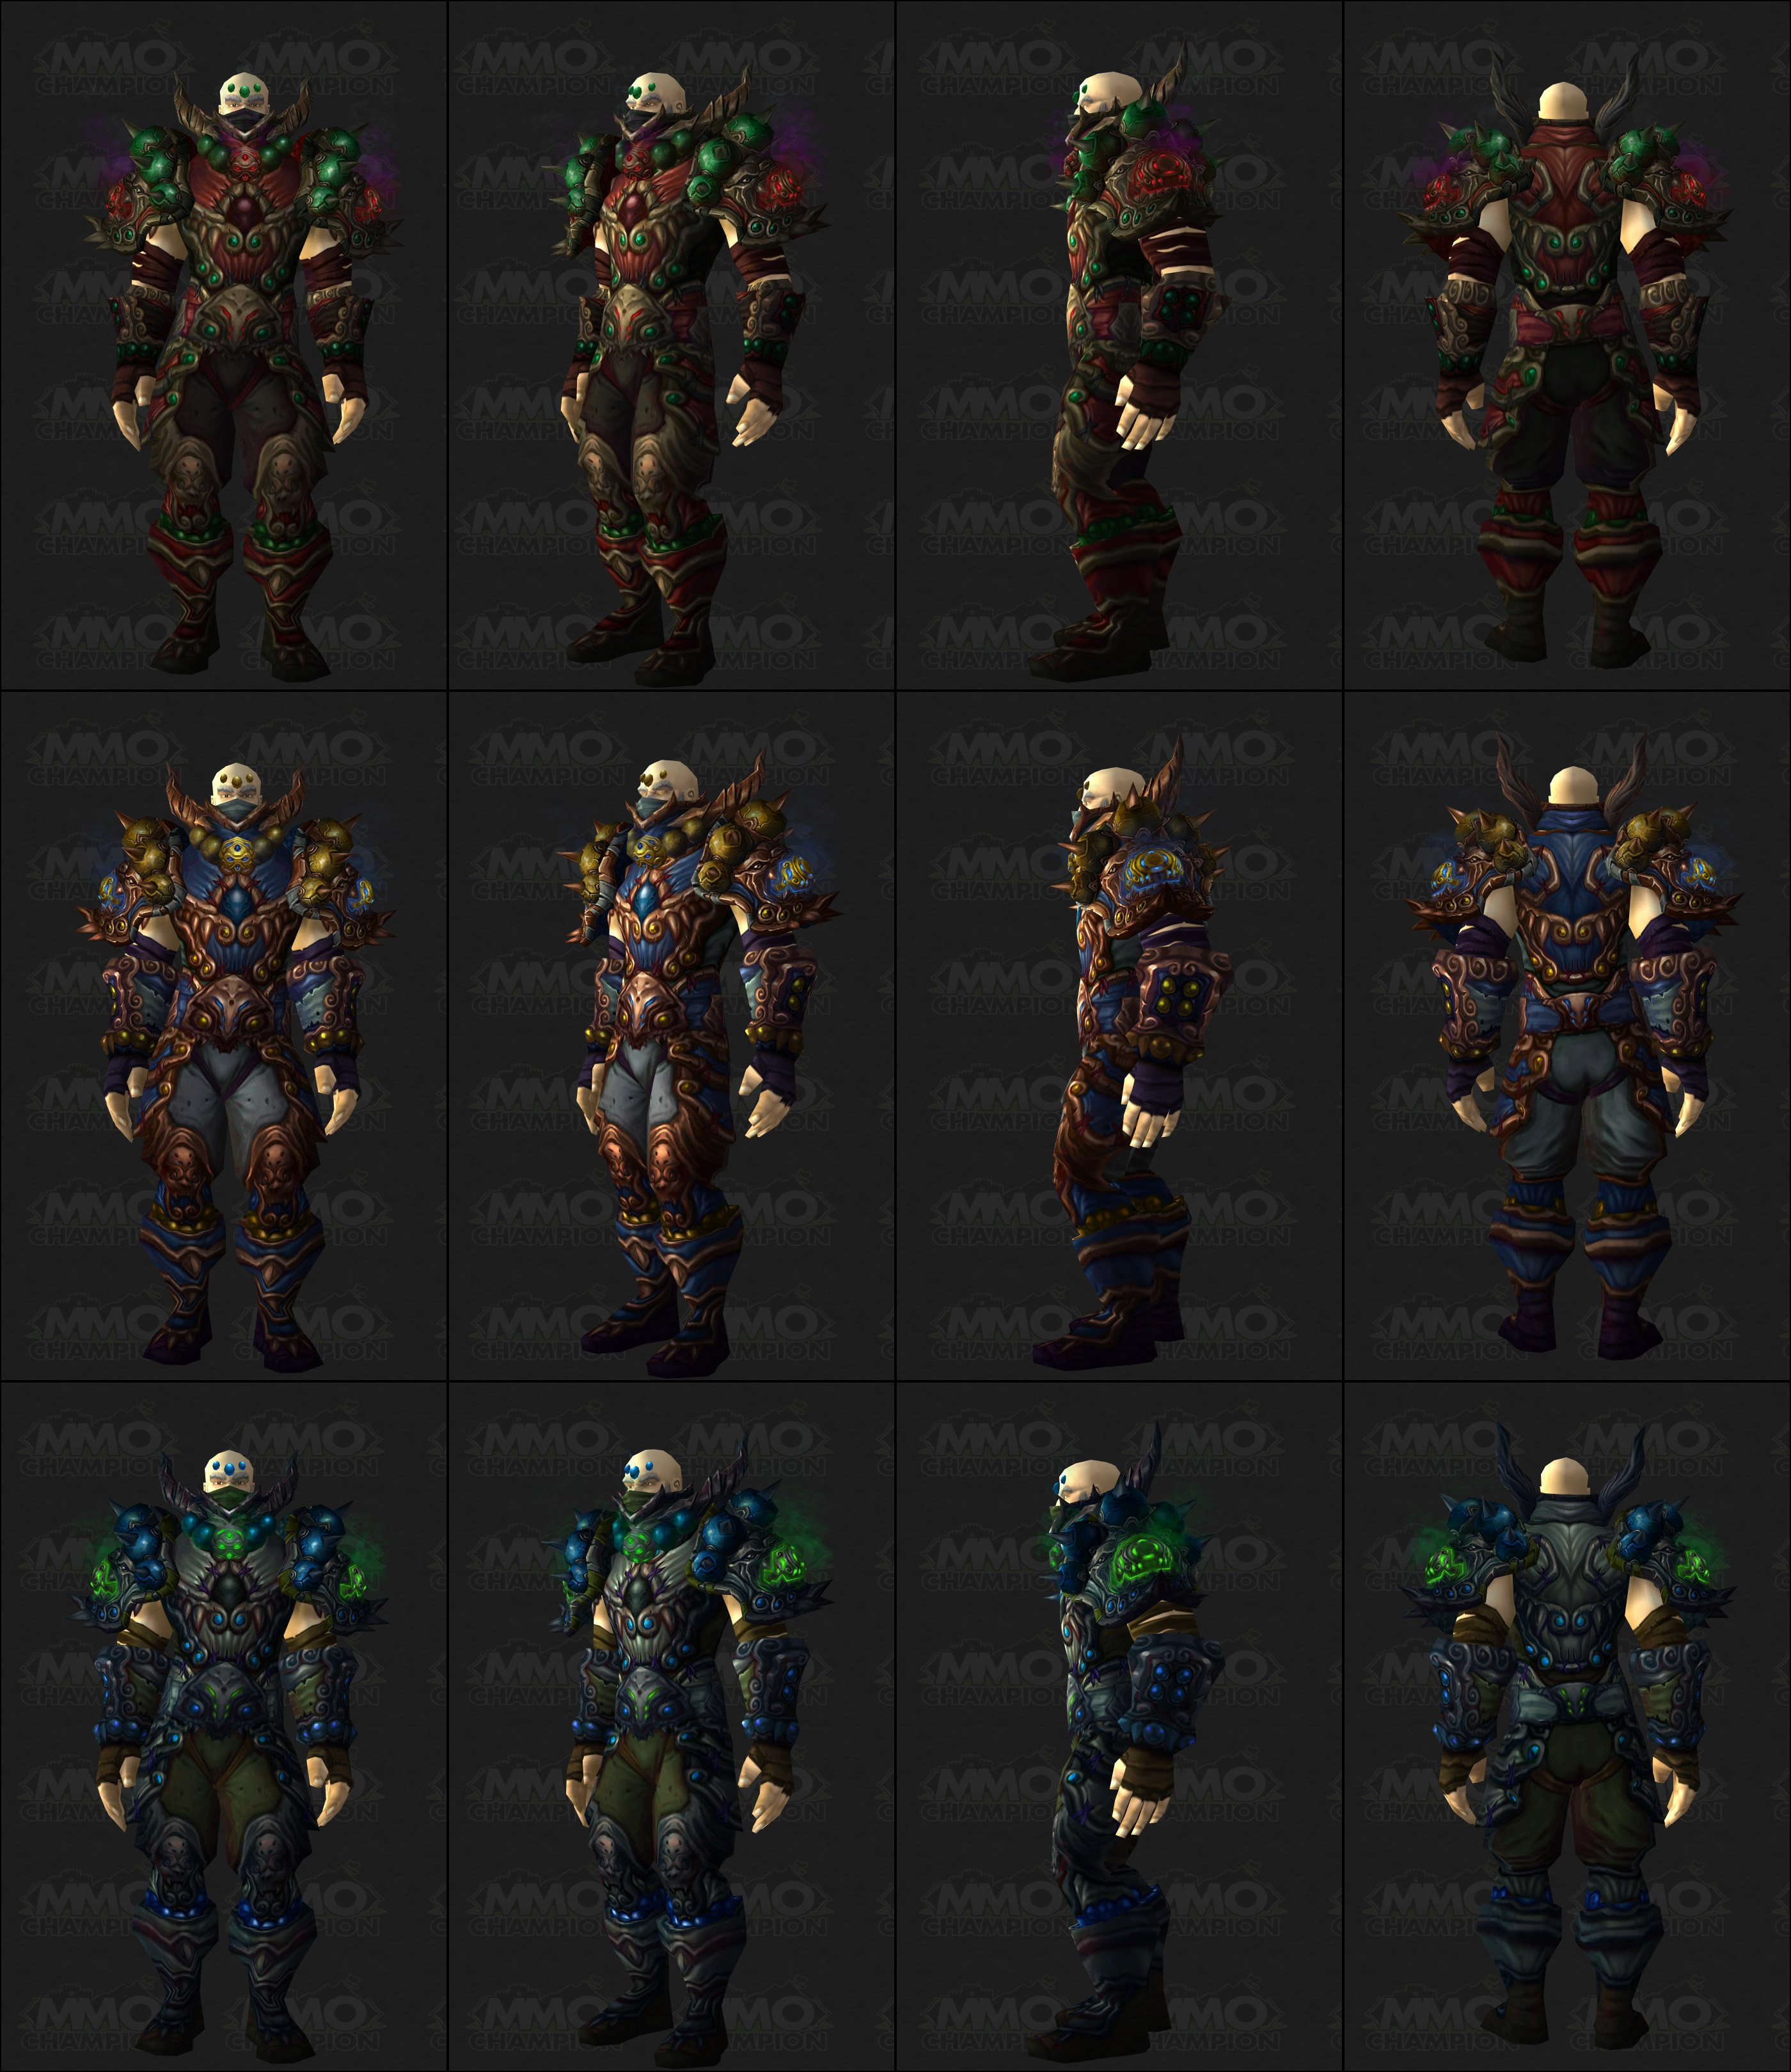 Official Patch 5 2 PTR Notes, Tier 15 Armor Sets, Season 13 Armor